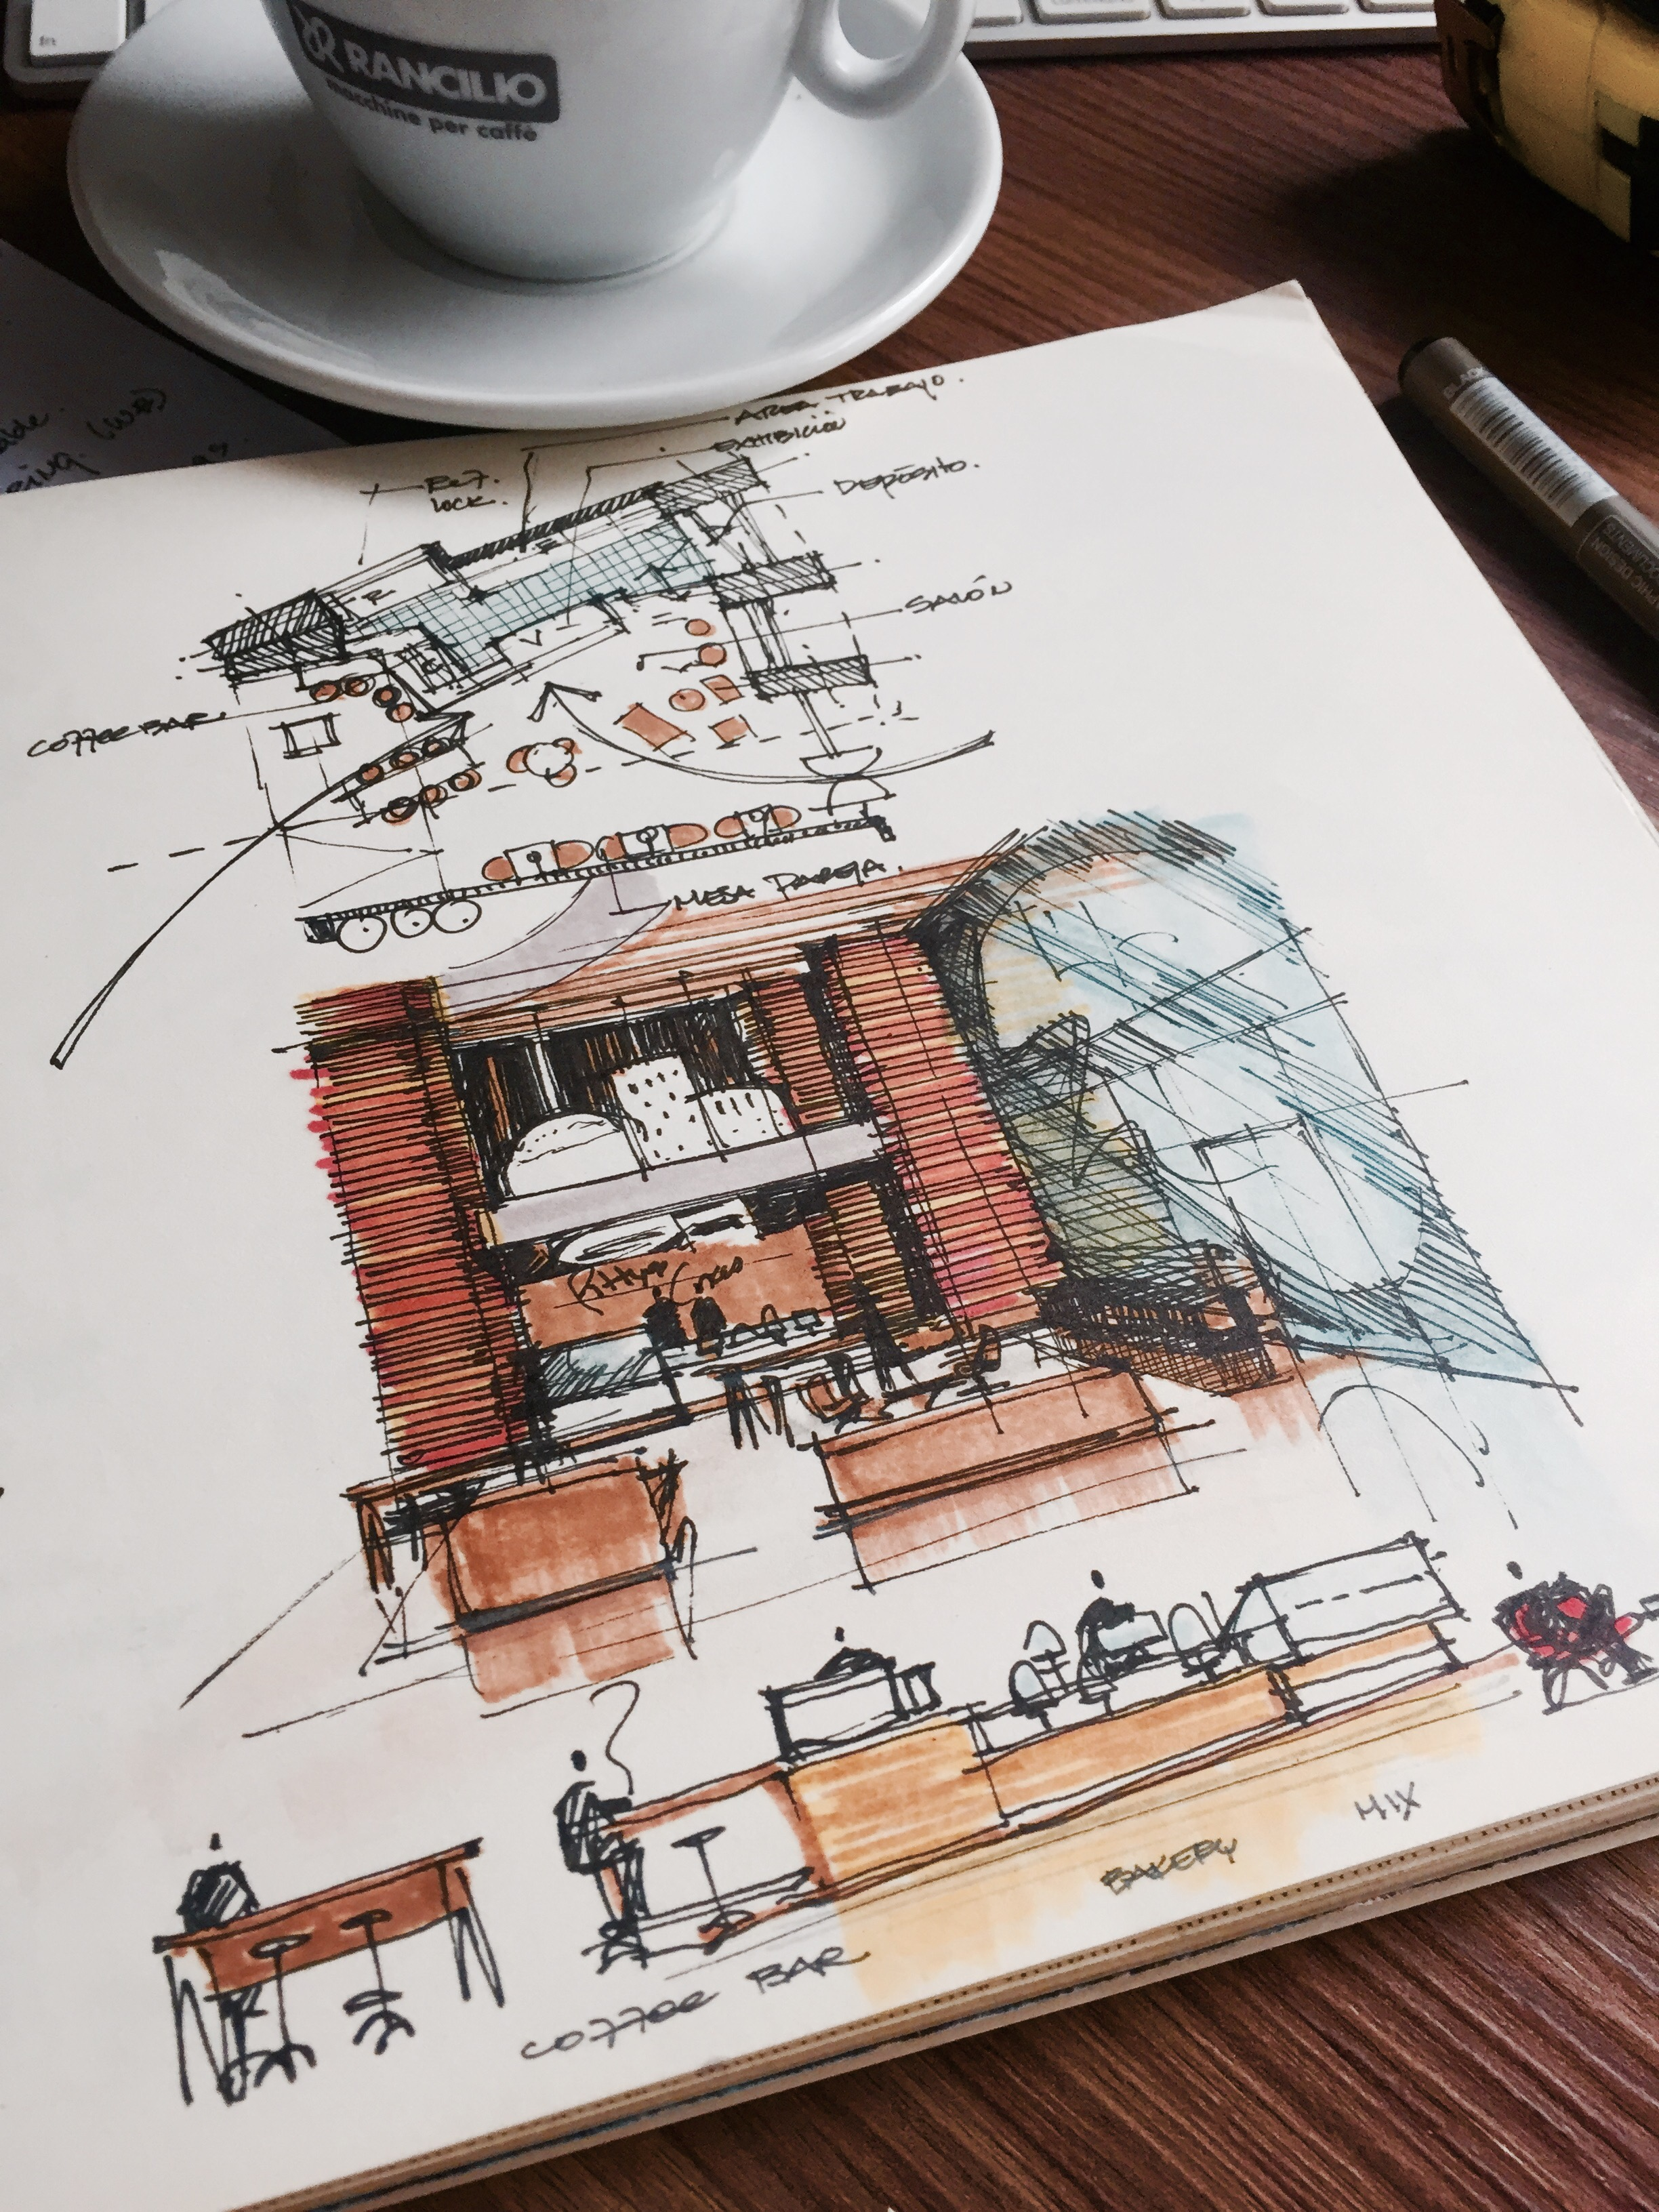 Sketchbook over desk with cup of coffee. Bakery Shop Design Sketches